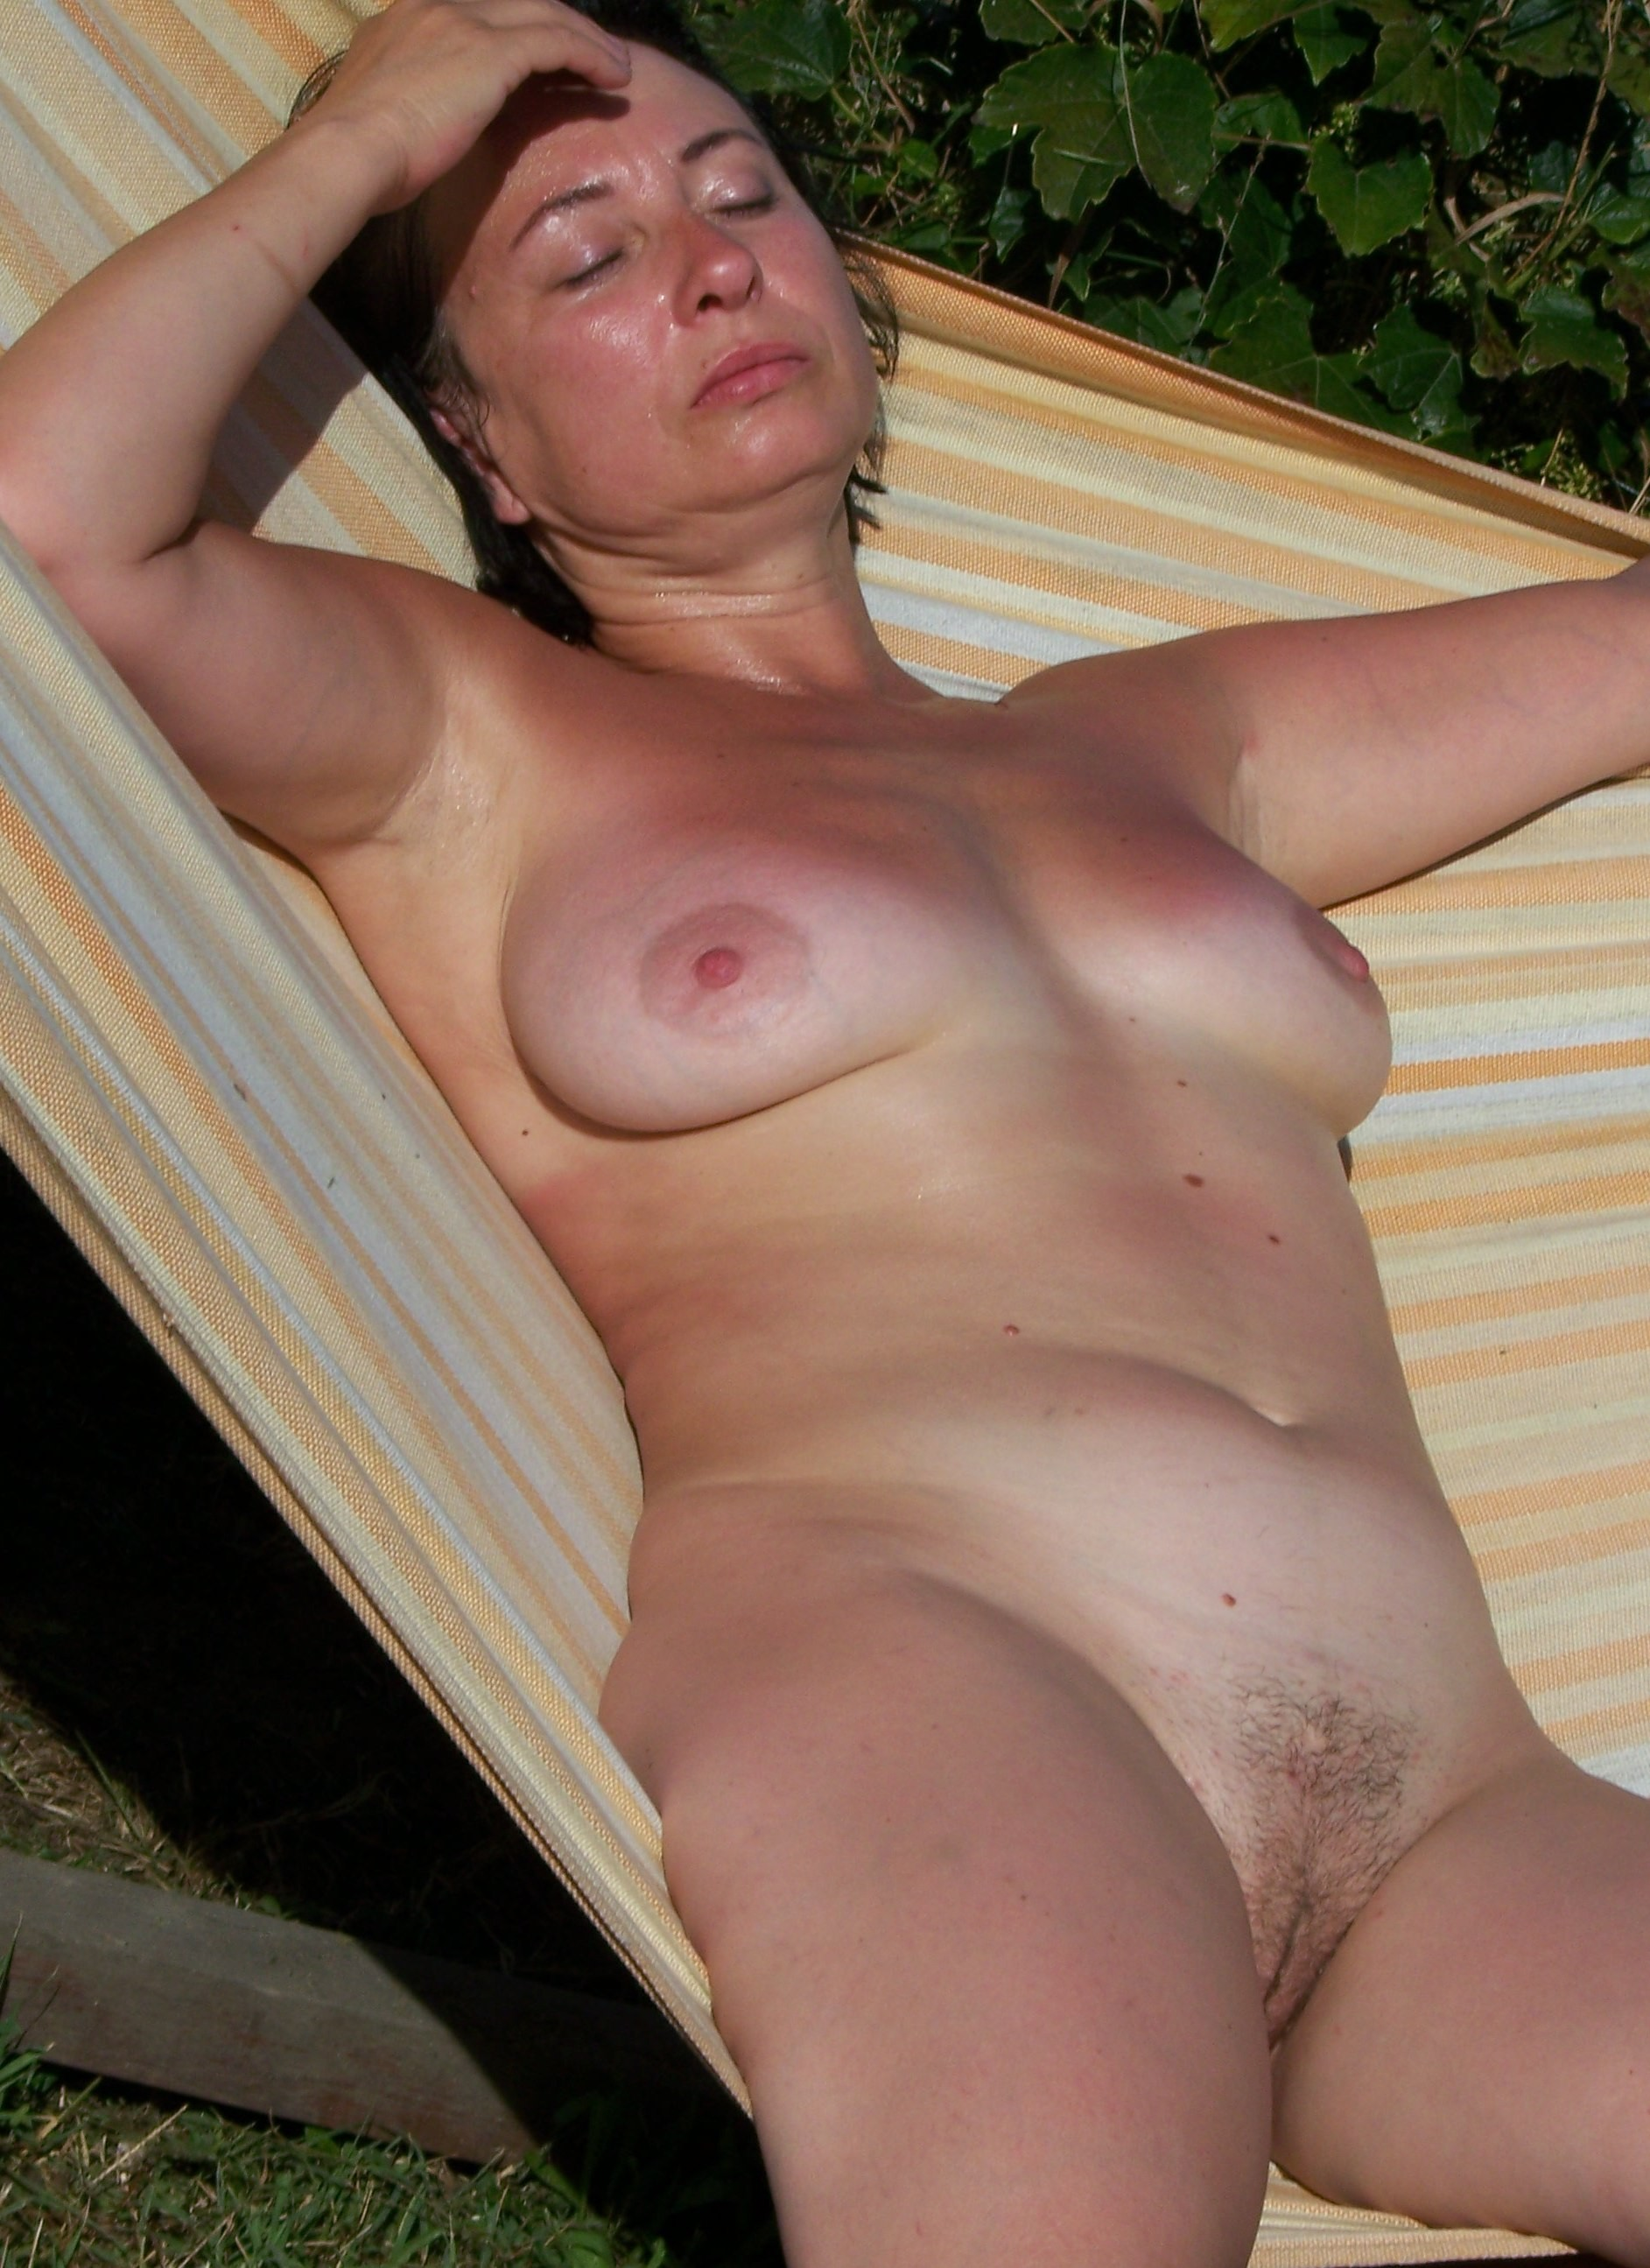 Handjobs mature women outdoors